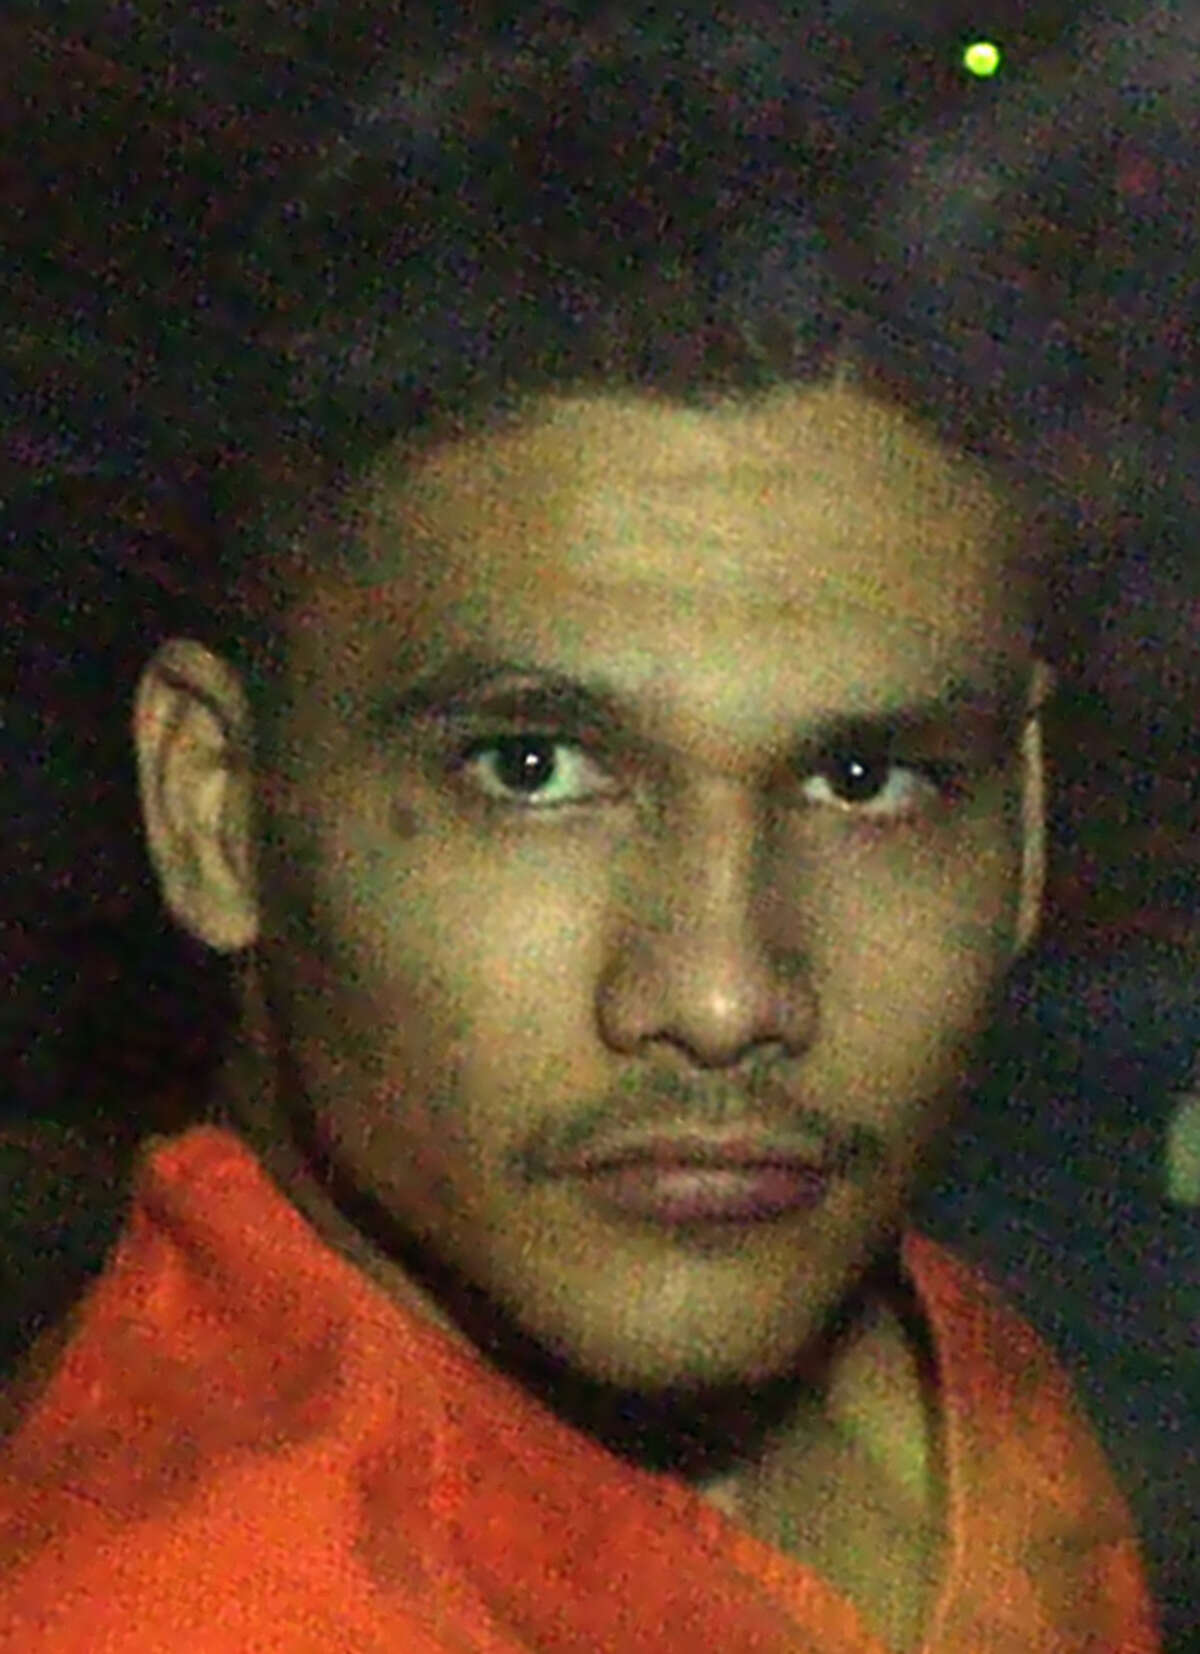 Manuel Garza, Jr. Age: 31 Execution: Still on death row Summary: Garza was convicted of shooting and killing a San Antonio police officer with the officer's gun. The officer was trying to arrest Garza on outstanding warrants.